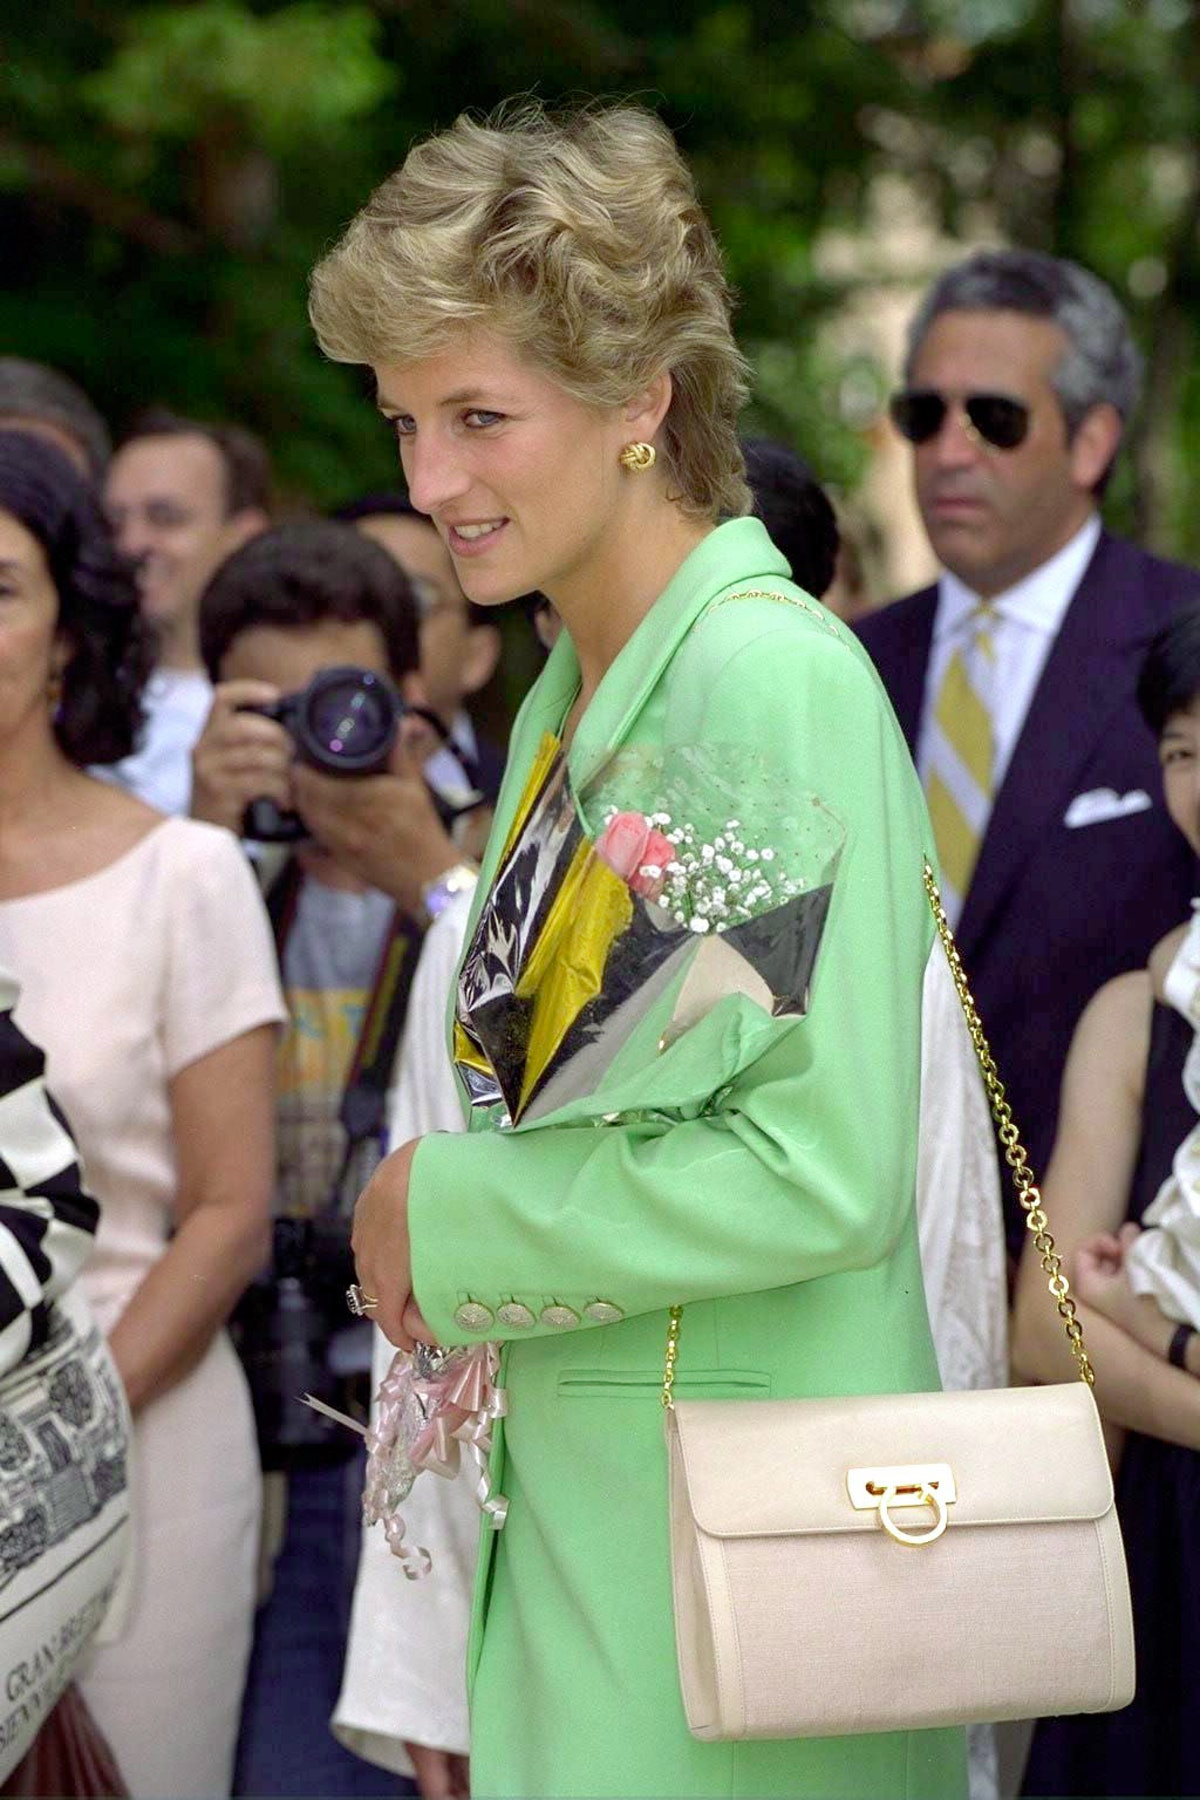 Princess Diana, Princess Of Wales at the Venice Biennale wearing a pastel green blazer and cream Salvatore Ferragamo bag. She has been given flowers by a fan.